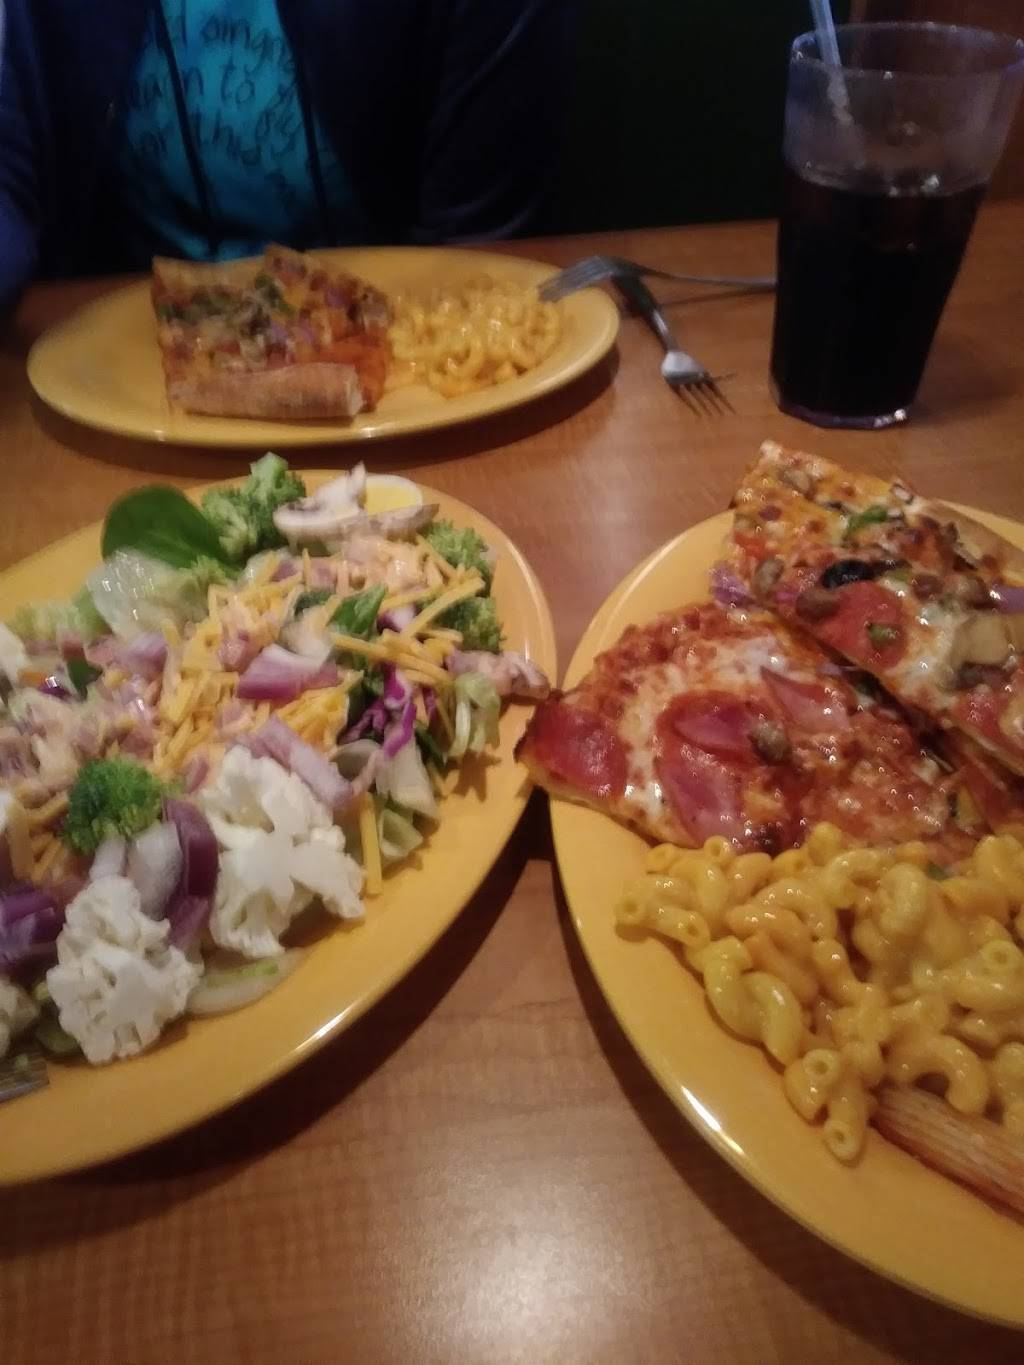 Mazzios Italian Eatery | meal delivery | 2200 E Mechanic St, Harrisonville, MO 64701, USA | 8168842300 OR +1 816-884-2300